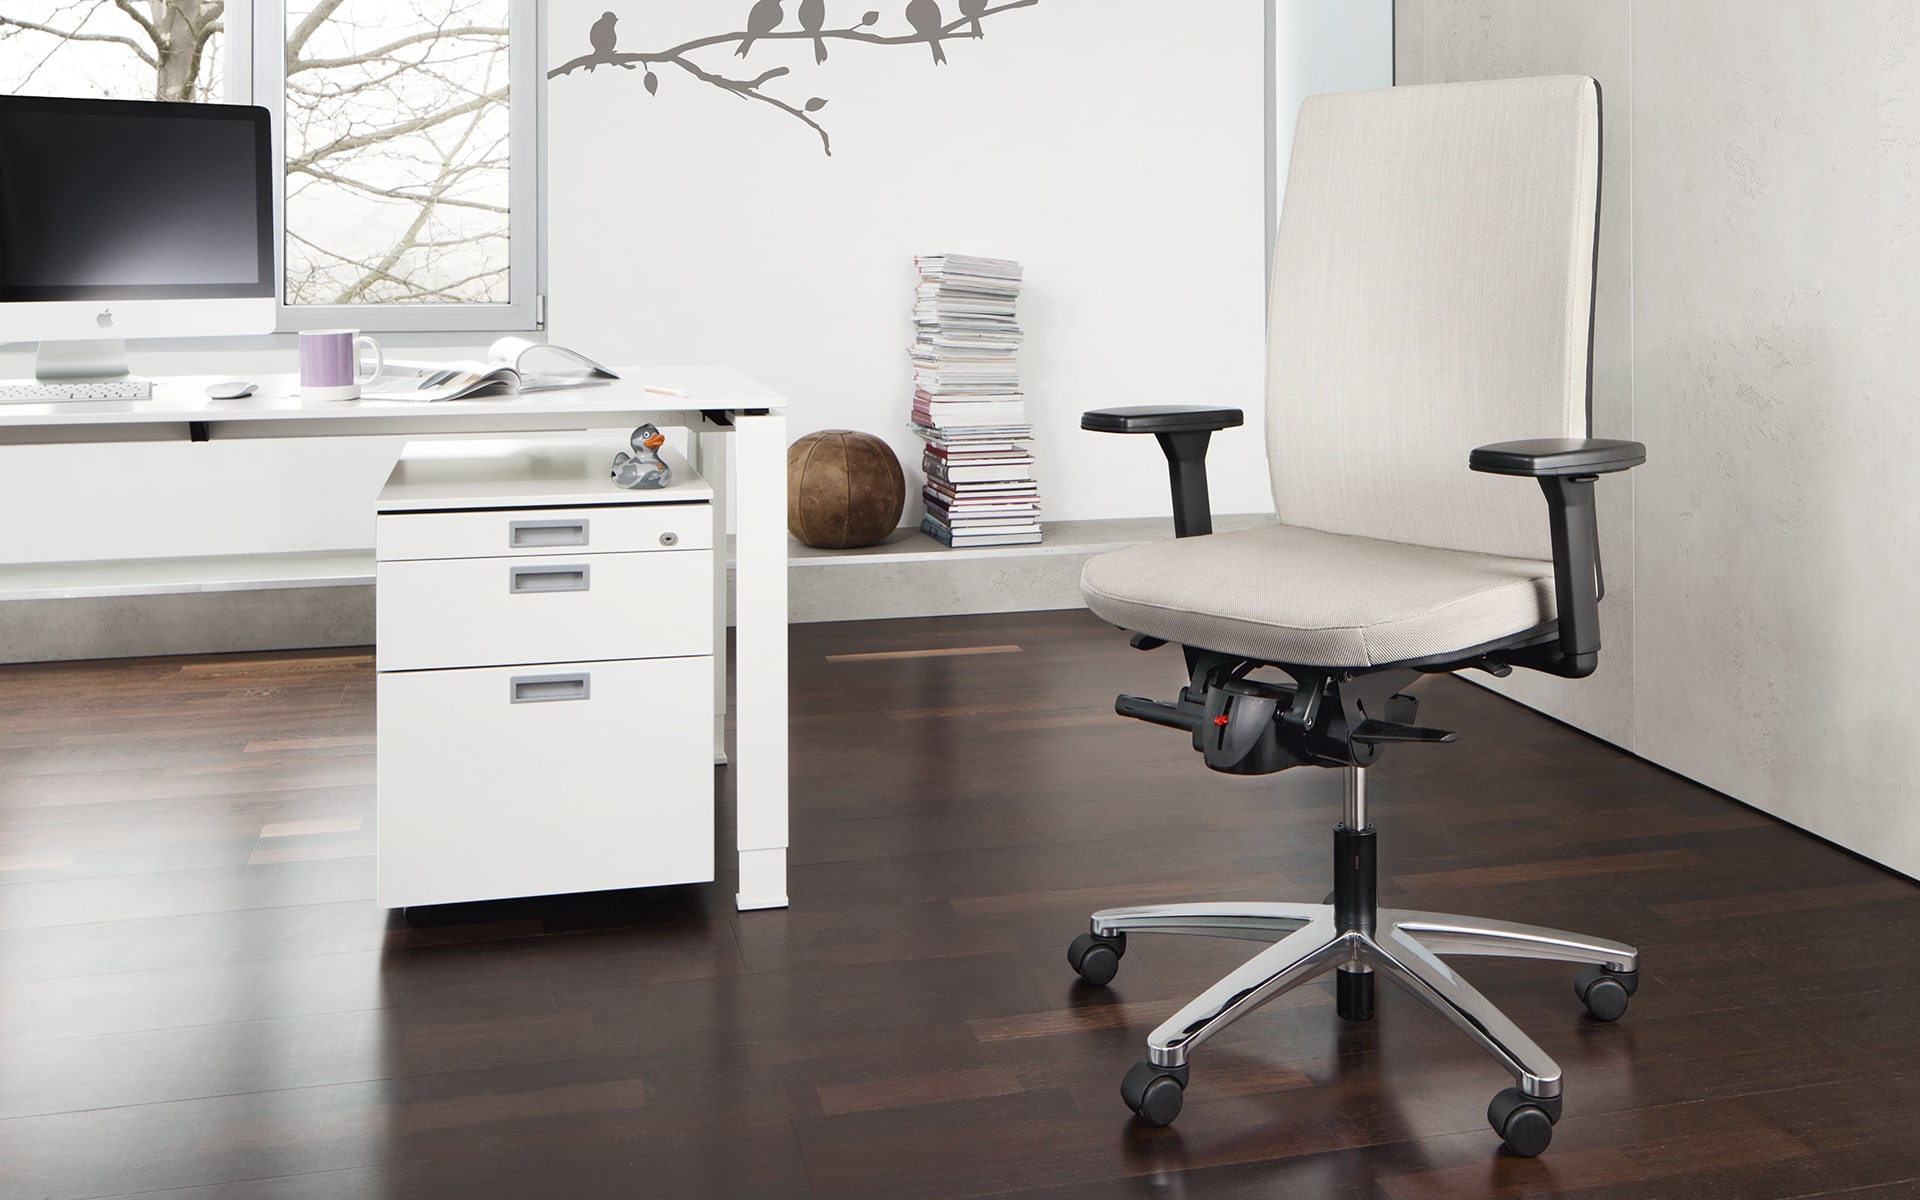 König + Neurath Tensa office chair by ITO Design with beige-colored upholstery in modern office